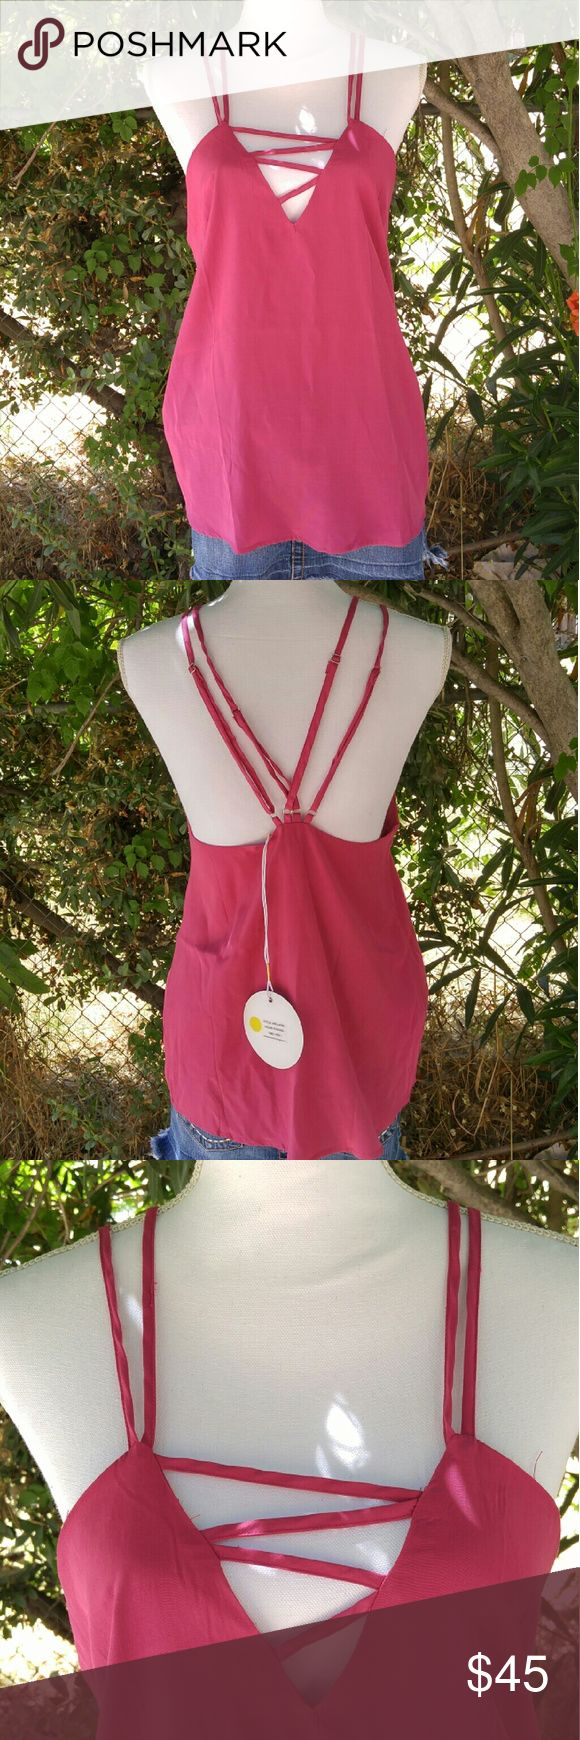 """Bright pink strappy top Perfect for summer! Very trendy with the strappy back and criss cross front. Be a star in this top! The size is a US 6, I wear a M/L and it fit me. So it could fit a medium The mannequin measurements are:  Shoulders: 15"""" Chest: 34"""" Waist: 26.7"""" Hip: 35.4"""" Use #bishoujo to sort for your size  Please note I have several pets, but all items will be washed and cleaned #premonition #strappyblouse #pink #brightpink #pinkstrappyblouse #strappy #nwt Premonition Tops Tank Tops"""